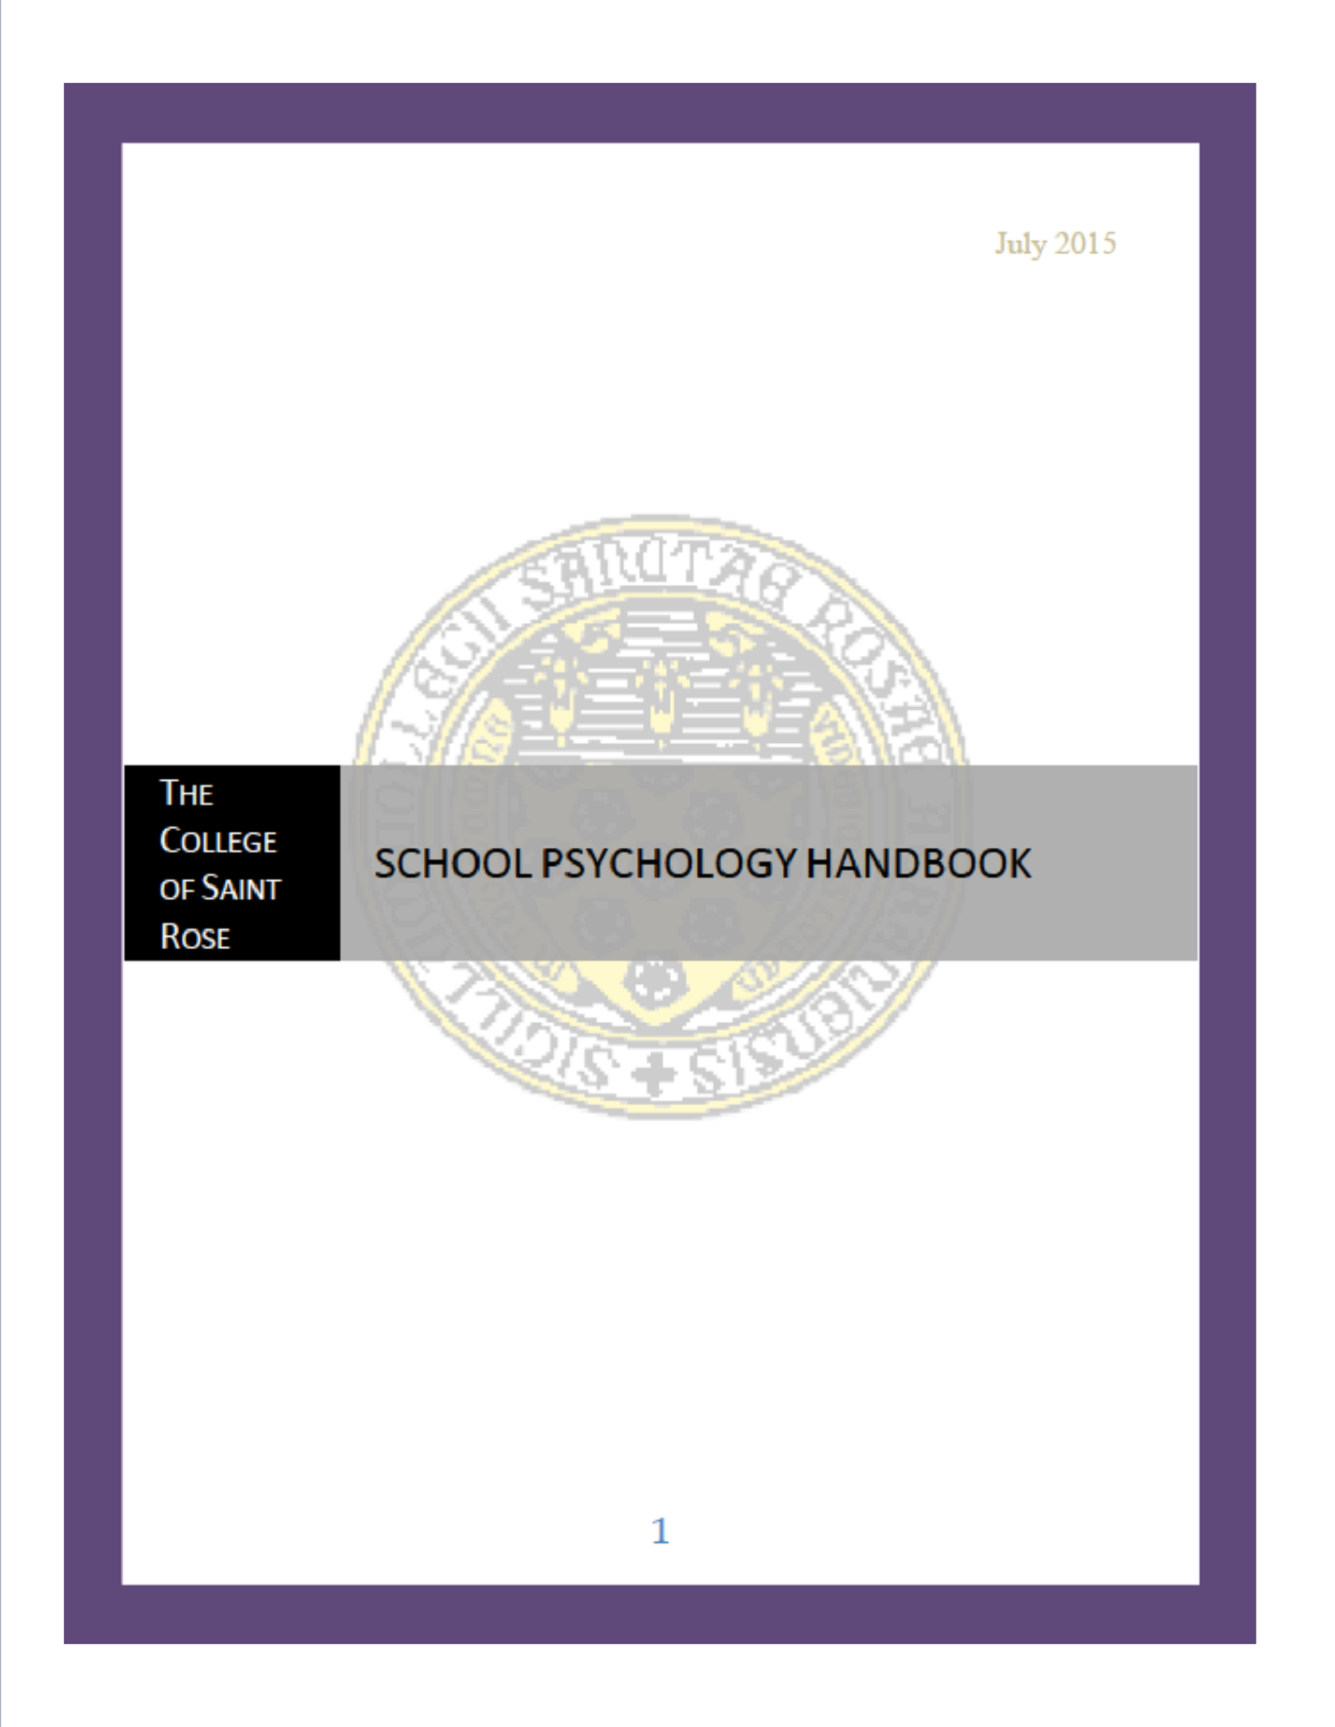 an adolescent case study for a psychology class Psychology case studies, child psychology, psychological disorders psychology research papers custom written personality psychology- personality psychology research paper explores a sample of an order placed for a psychology class.